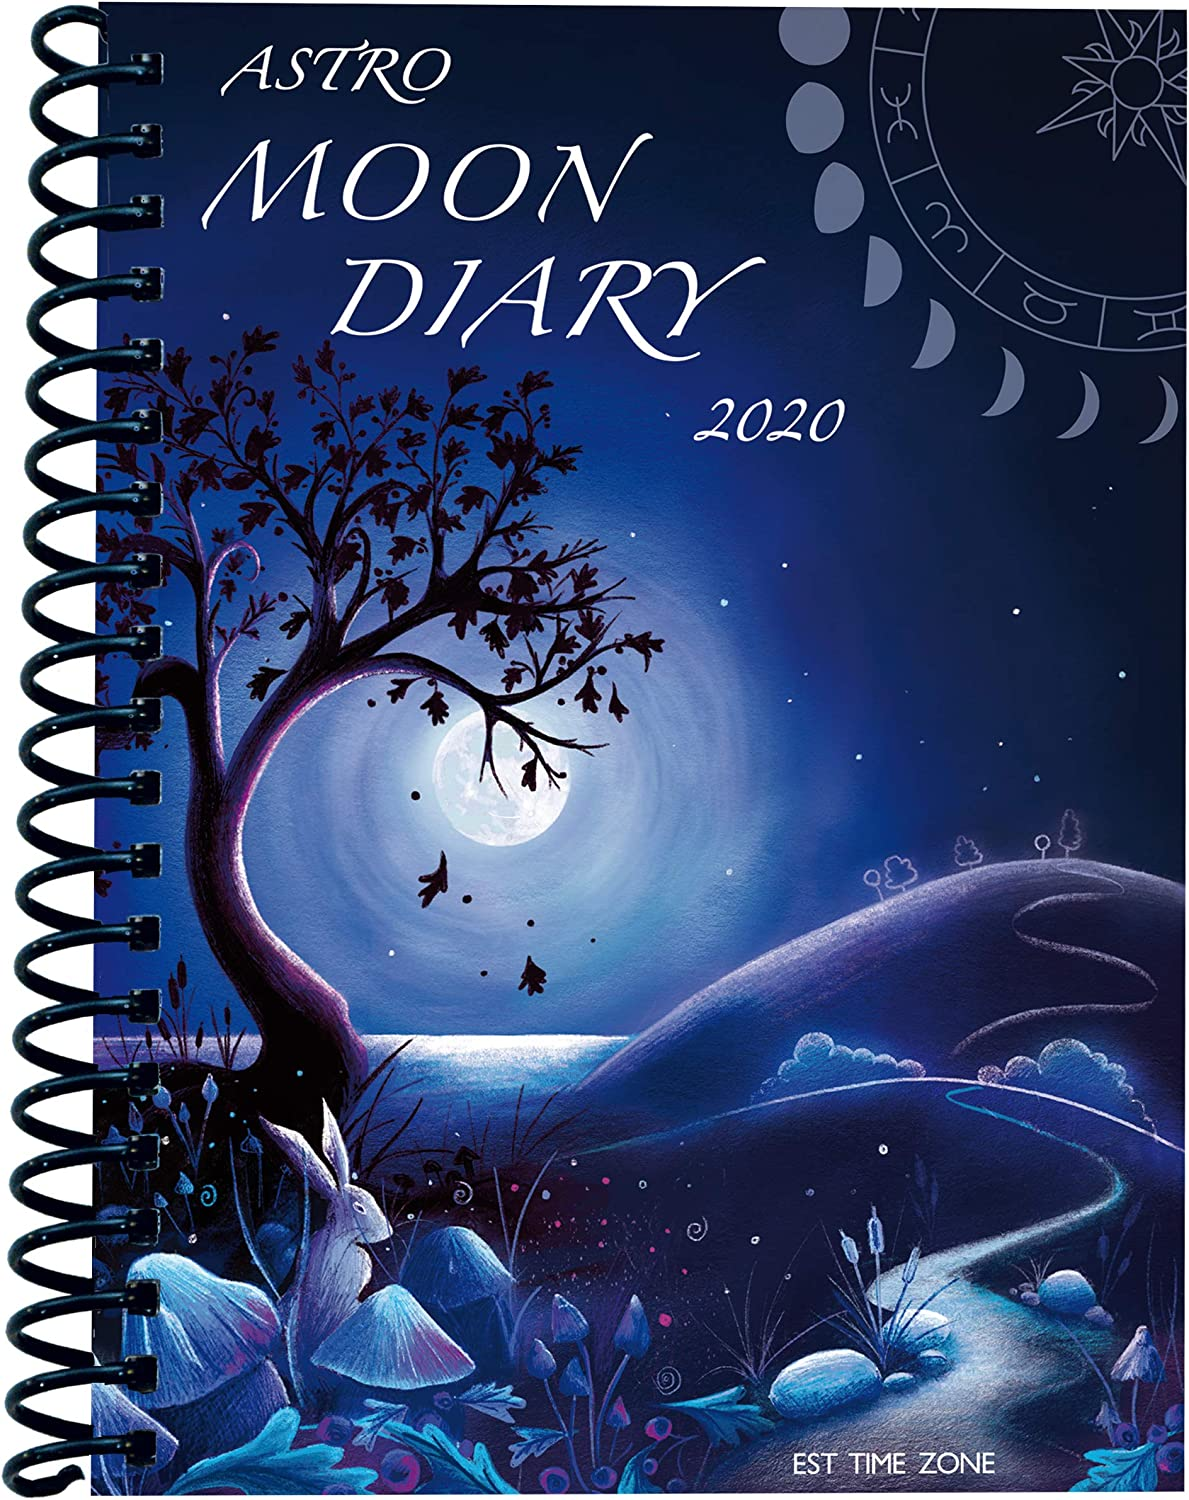 Astro Moon Diary 2020 | The Best 2020 Pagan and Witchy Planners | WitchcraftedLife.com